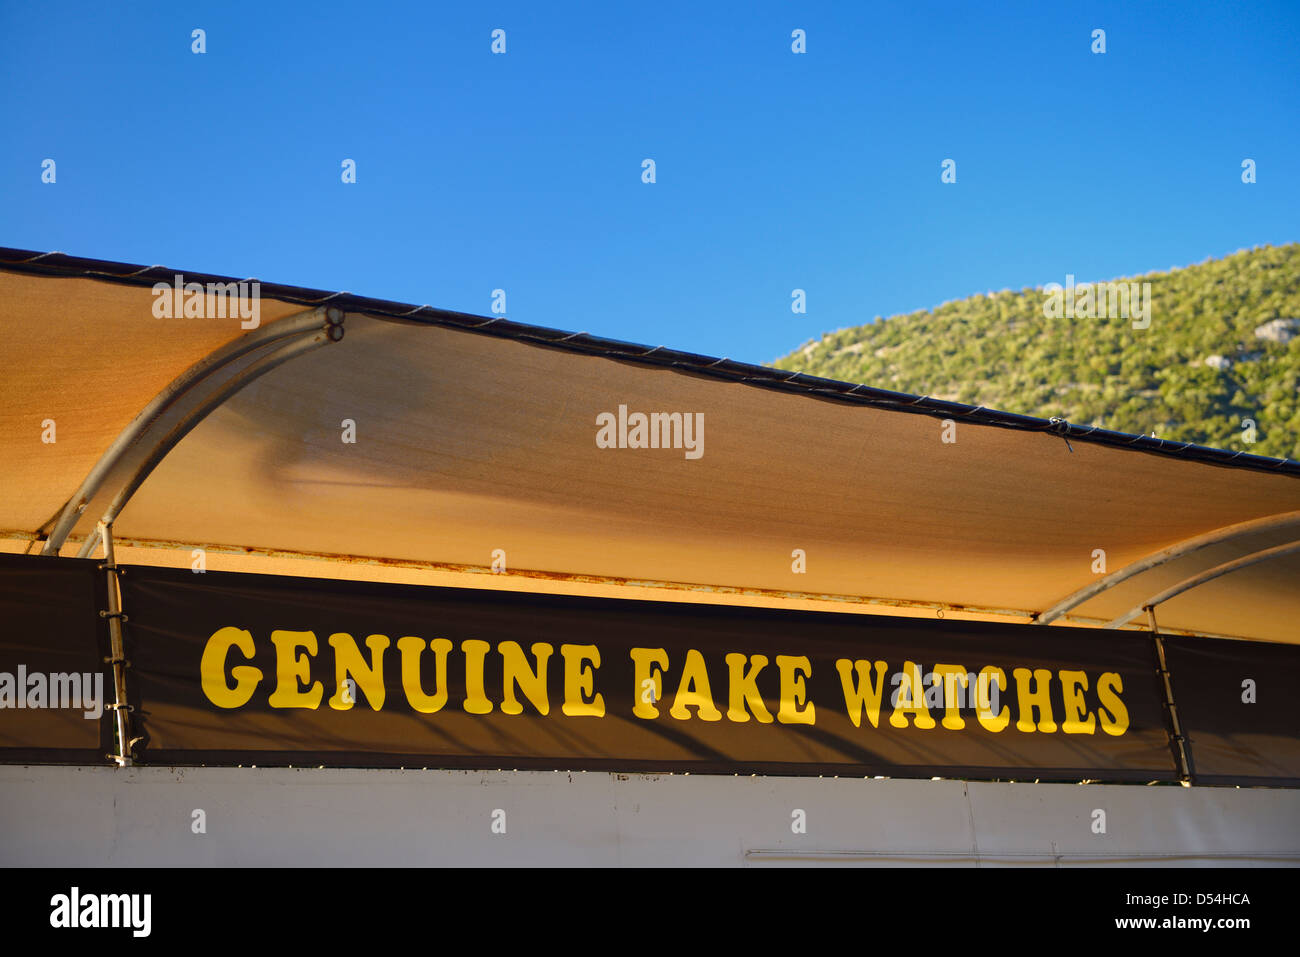 Ironic sign for genuine fake watches at the entrance to the ancient city of Ephesus Turkey - Stock Image